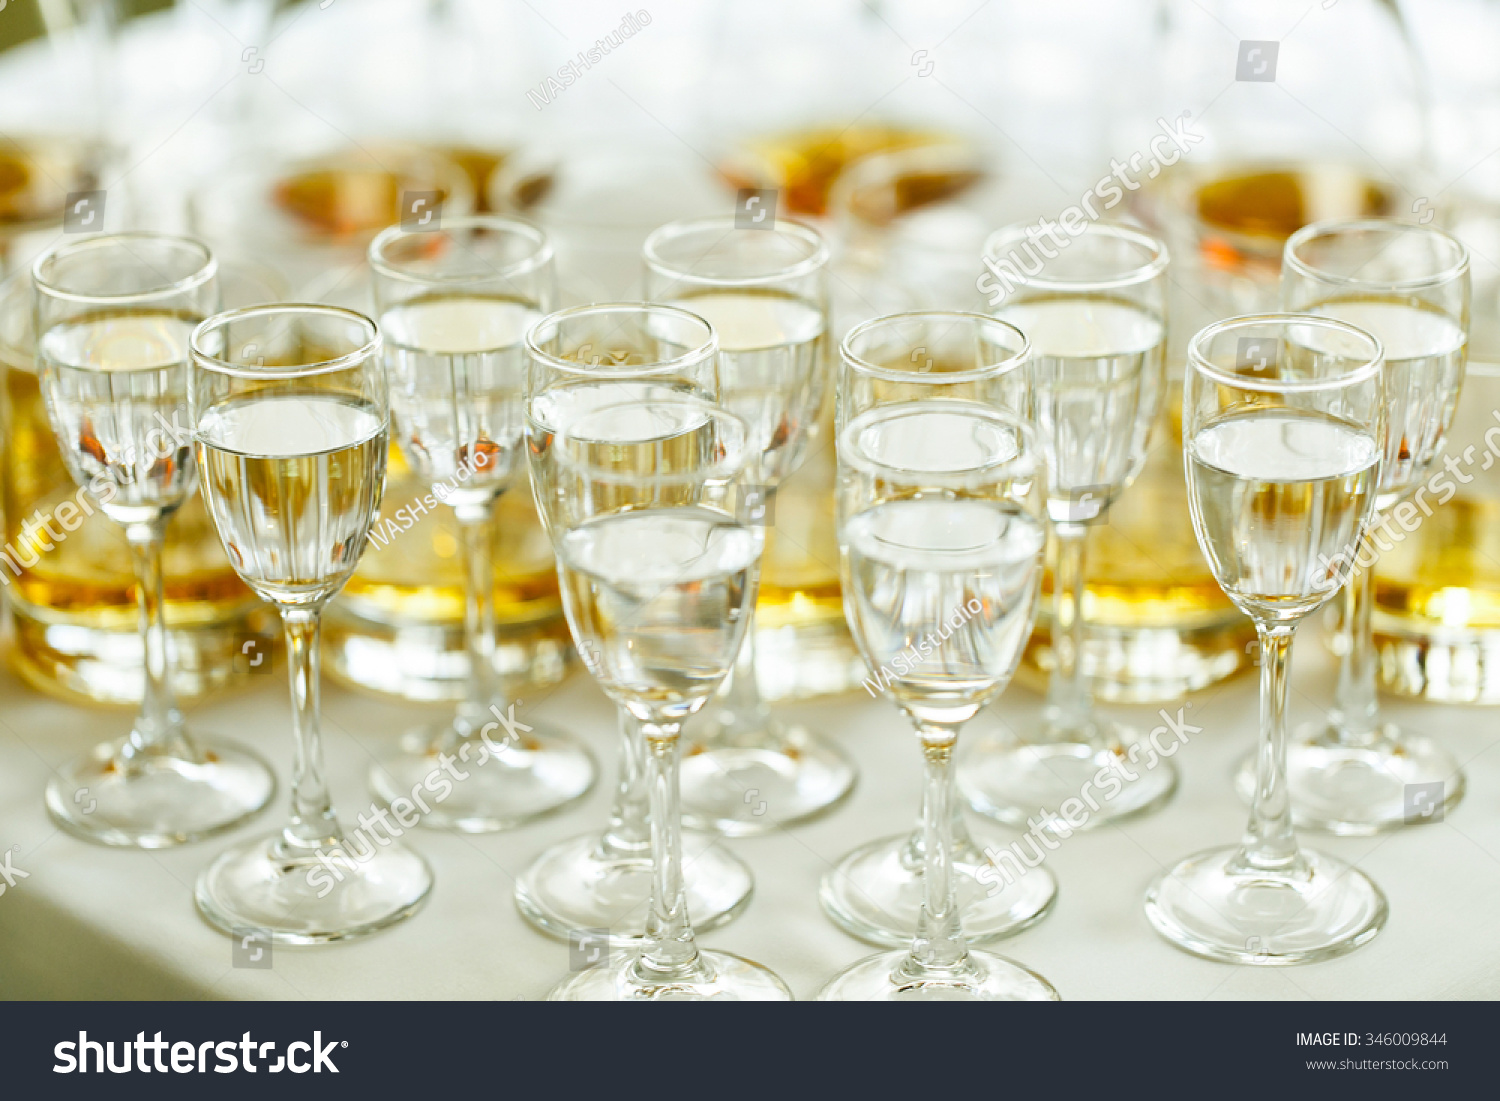 Elegant And Luxury Alcohol Table Wine Champagne Cognac At Wedding